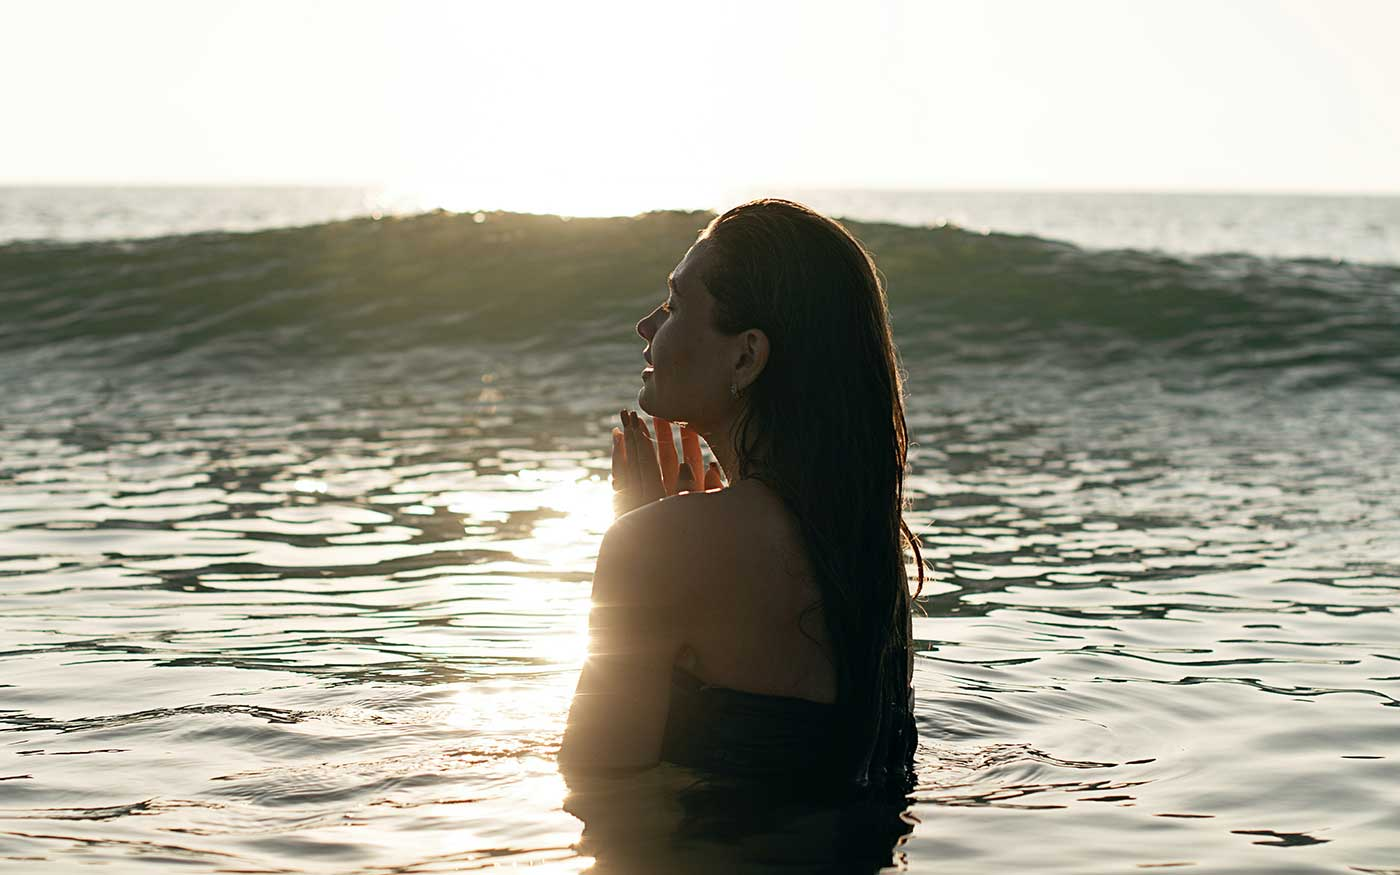 woman immersed in water